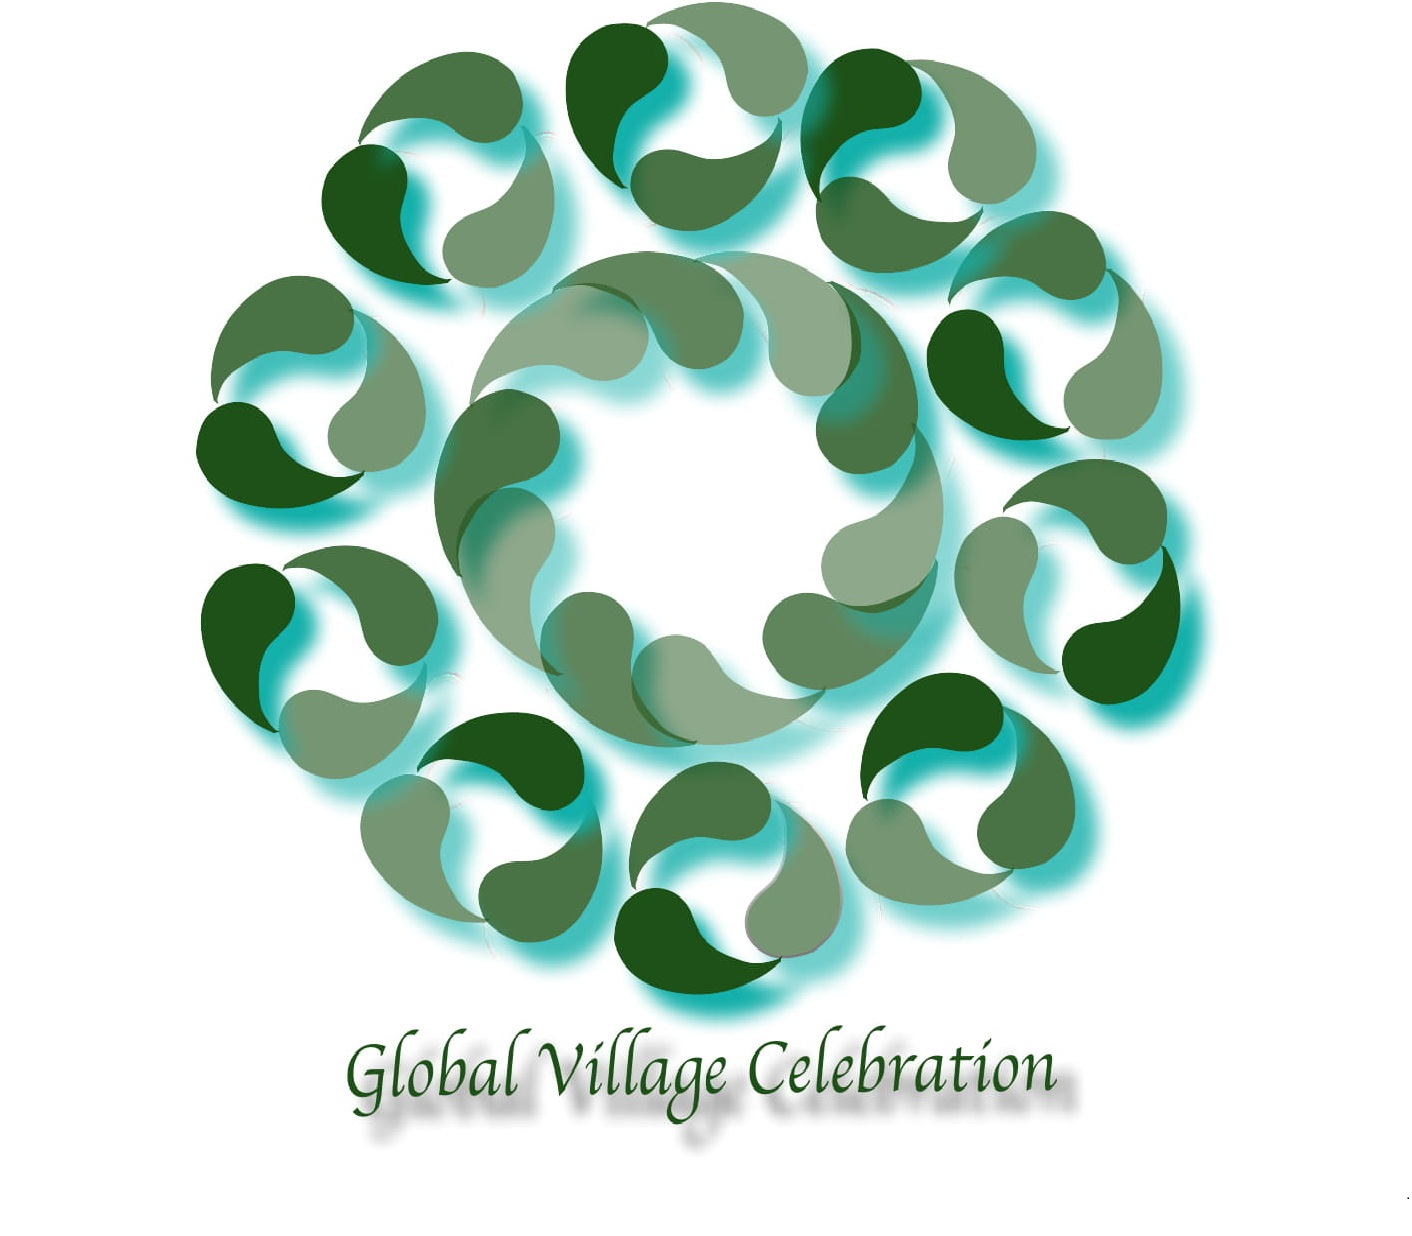 Our Global Village Celebrationlogo1.jpg